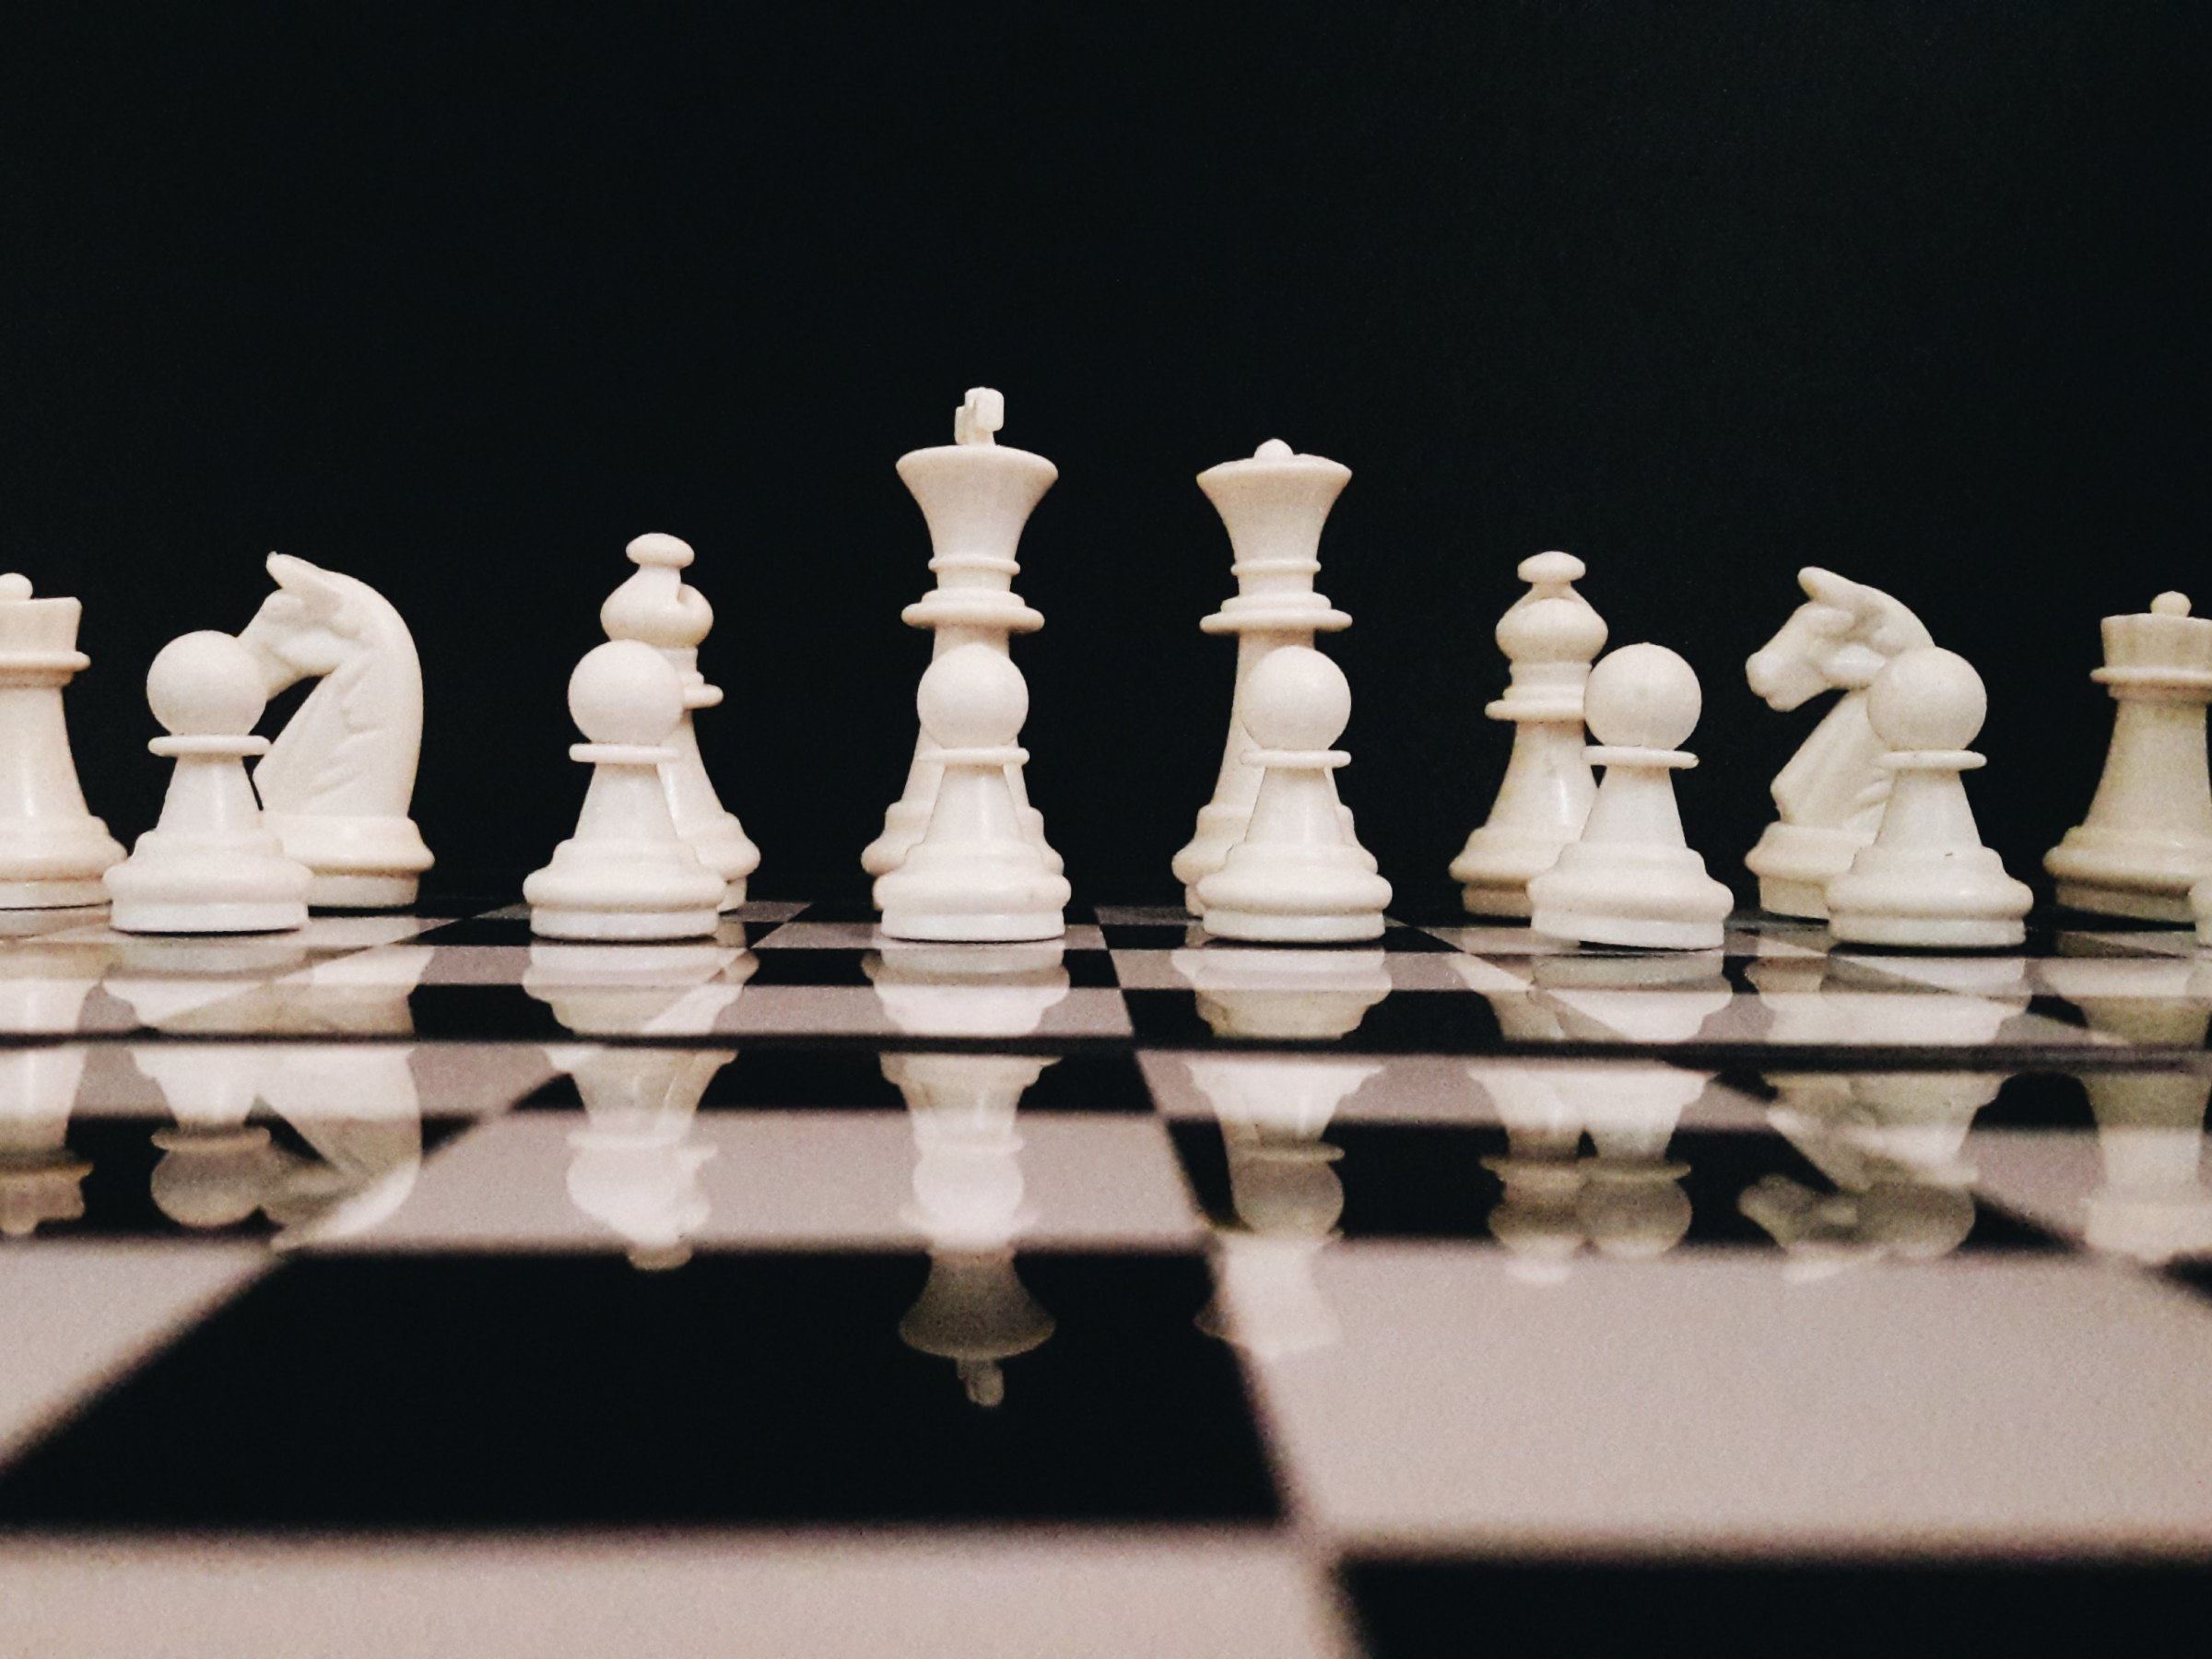 White Chess Pieces on a board